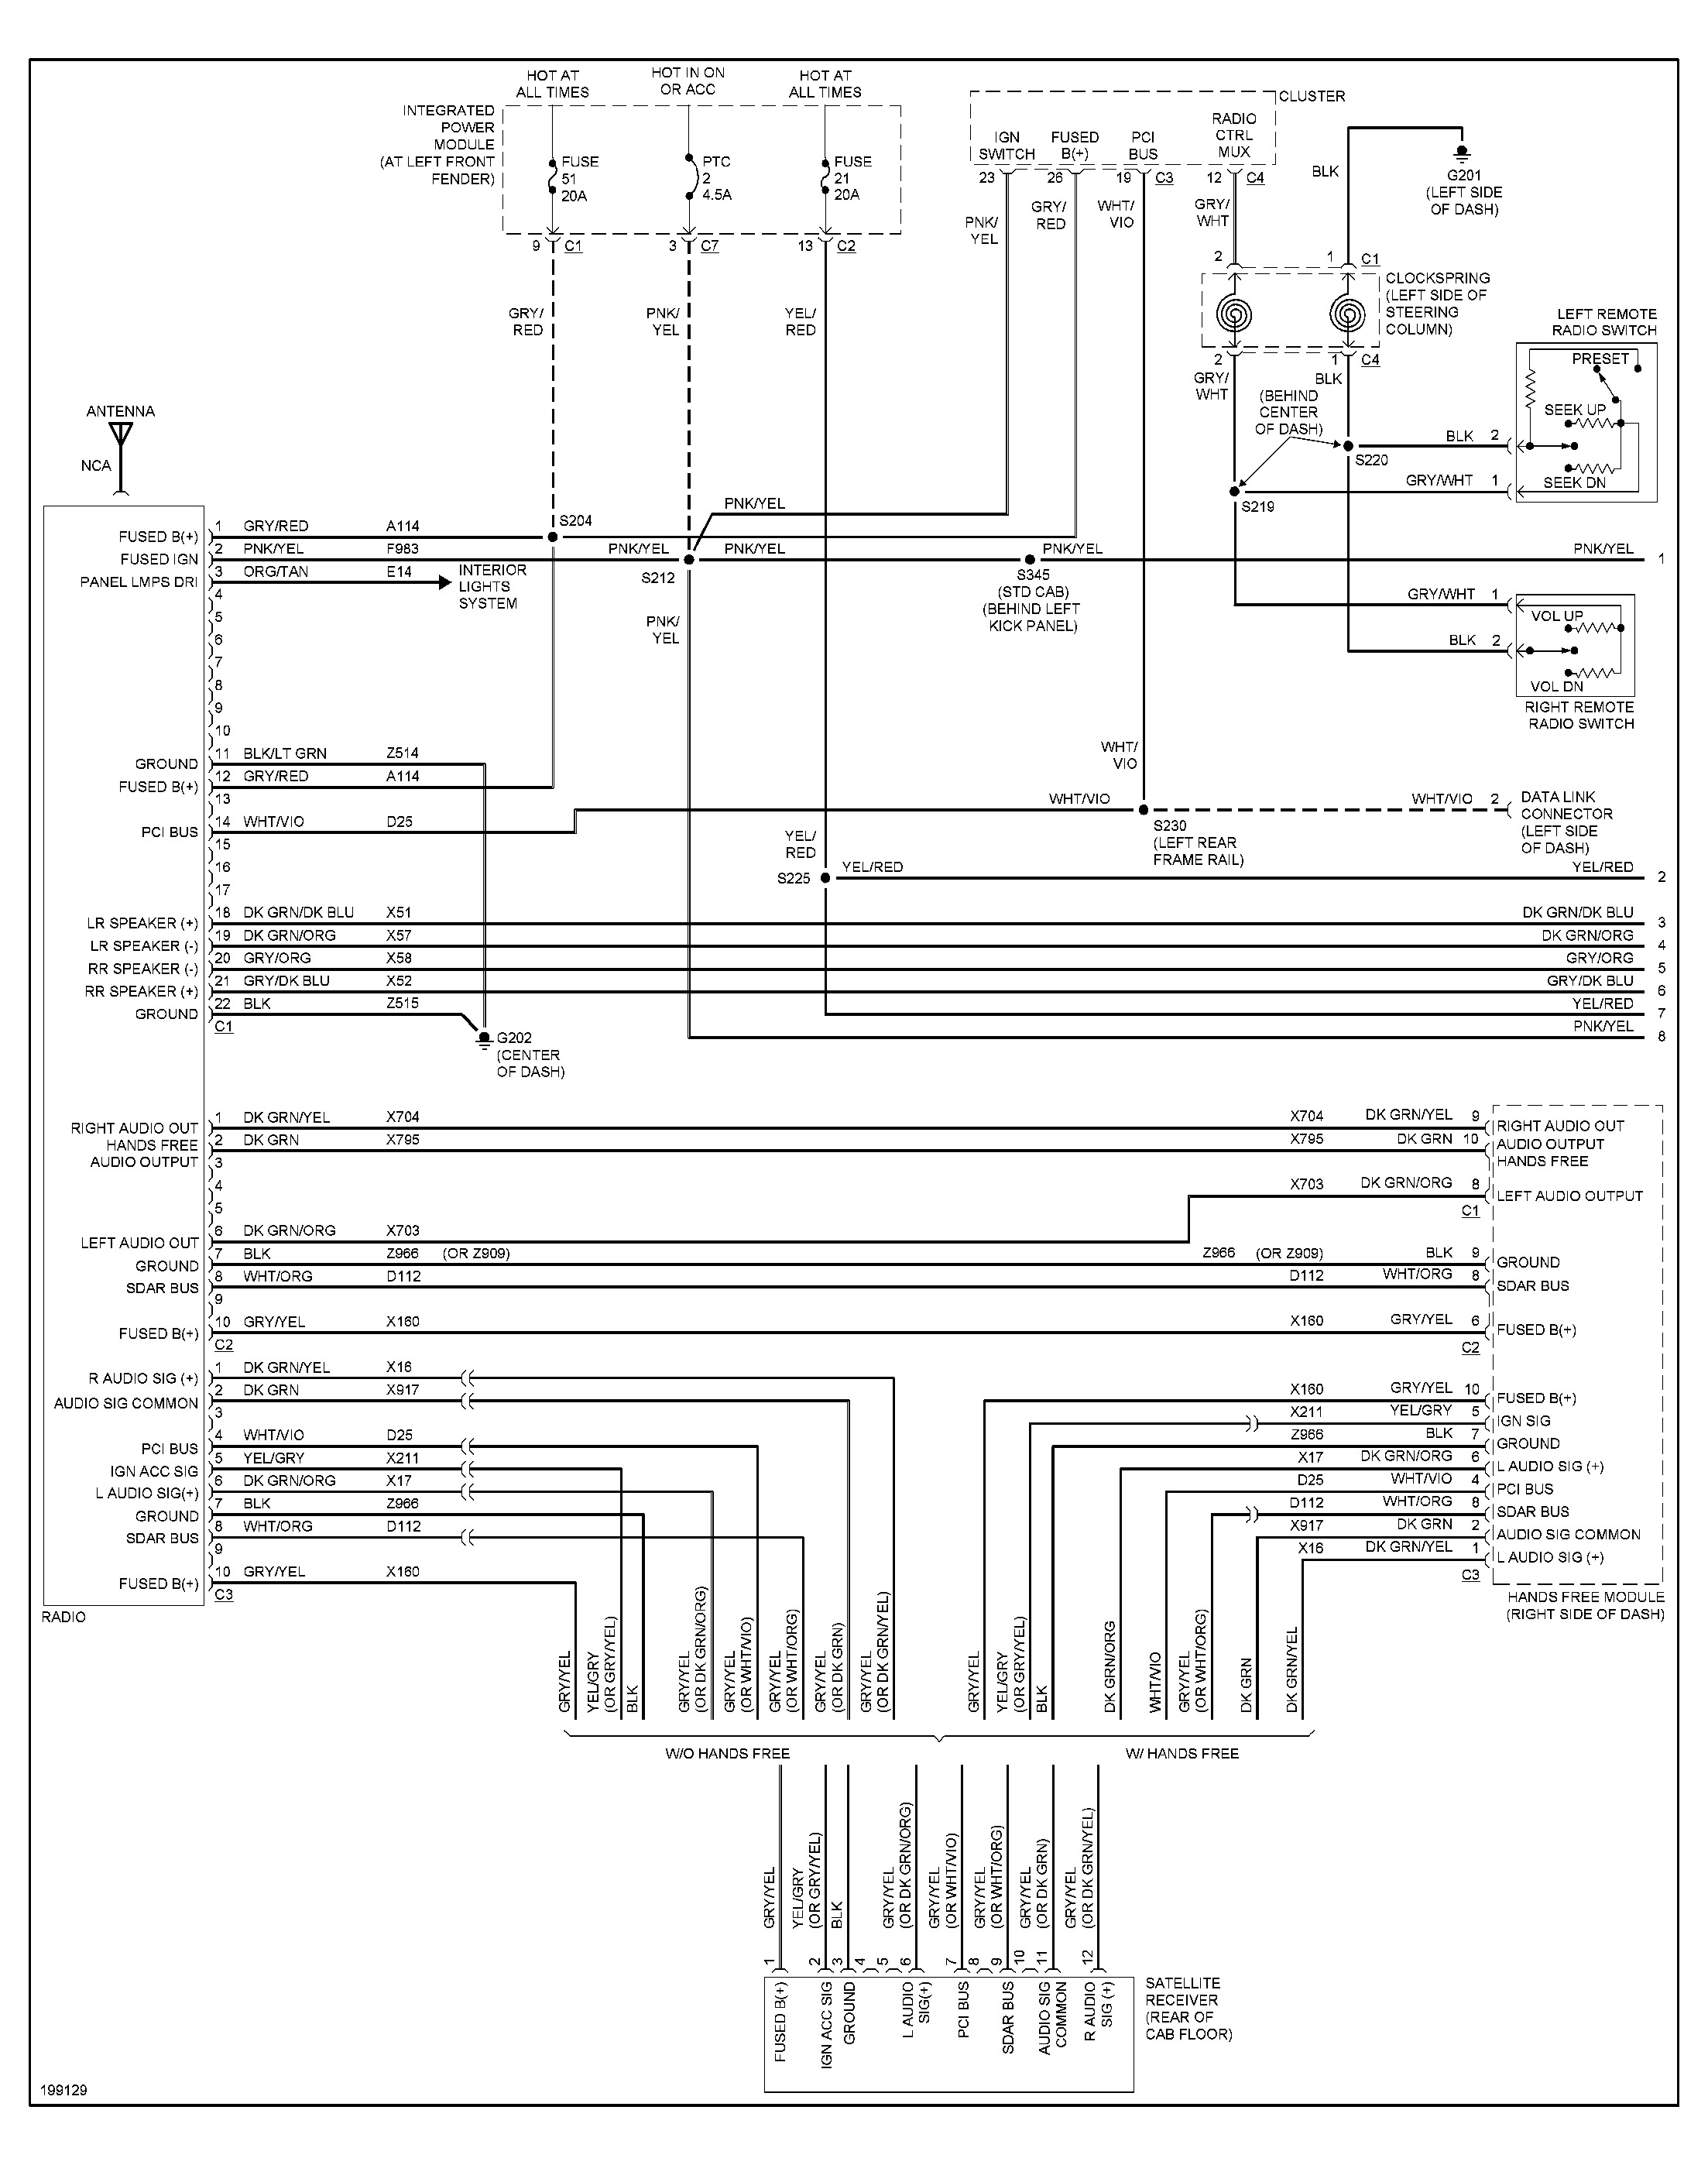 2002 dodge truck wiring diagram  u2022 wiring diagram for free